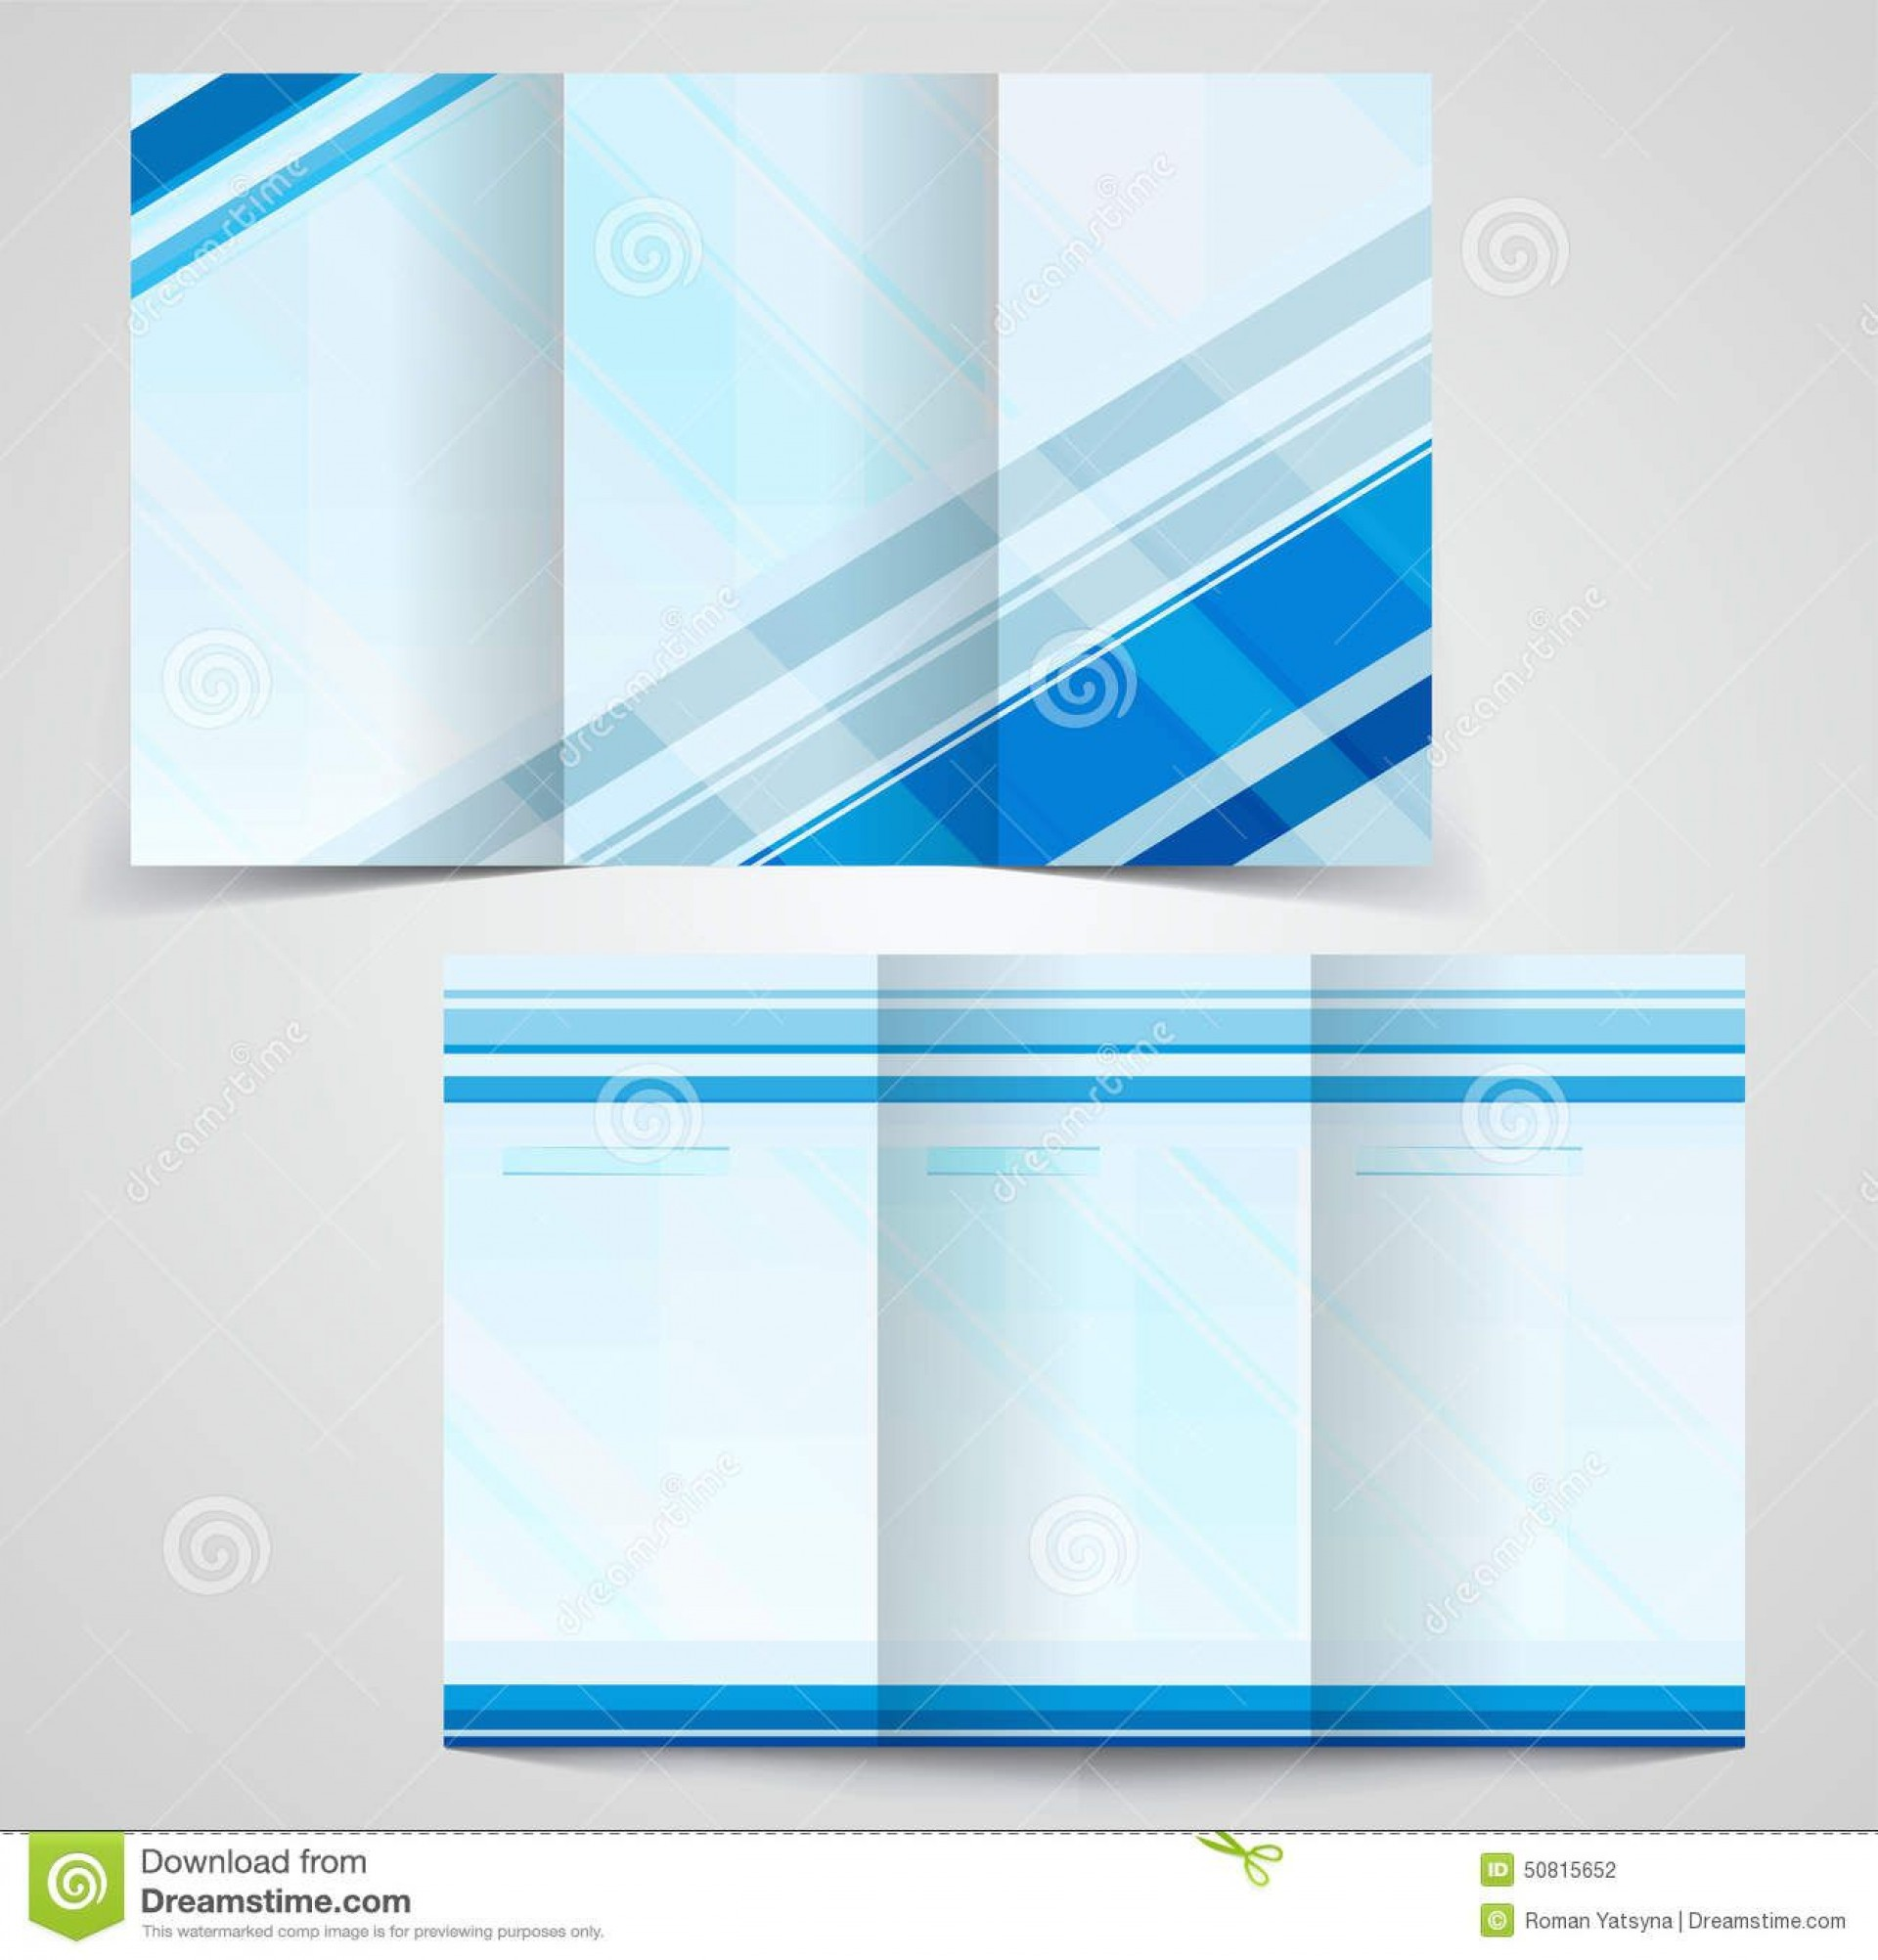 008 Wondrou M Word Blank Brochure Template Design  Microsoft Tri Fold1920